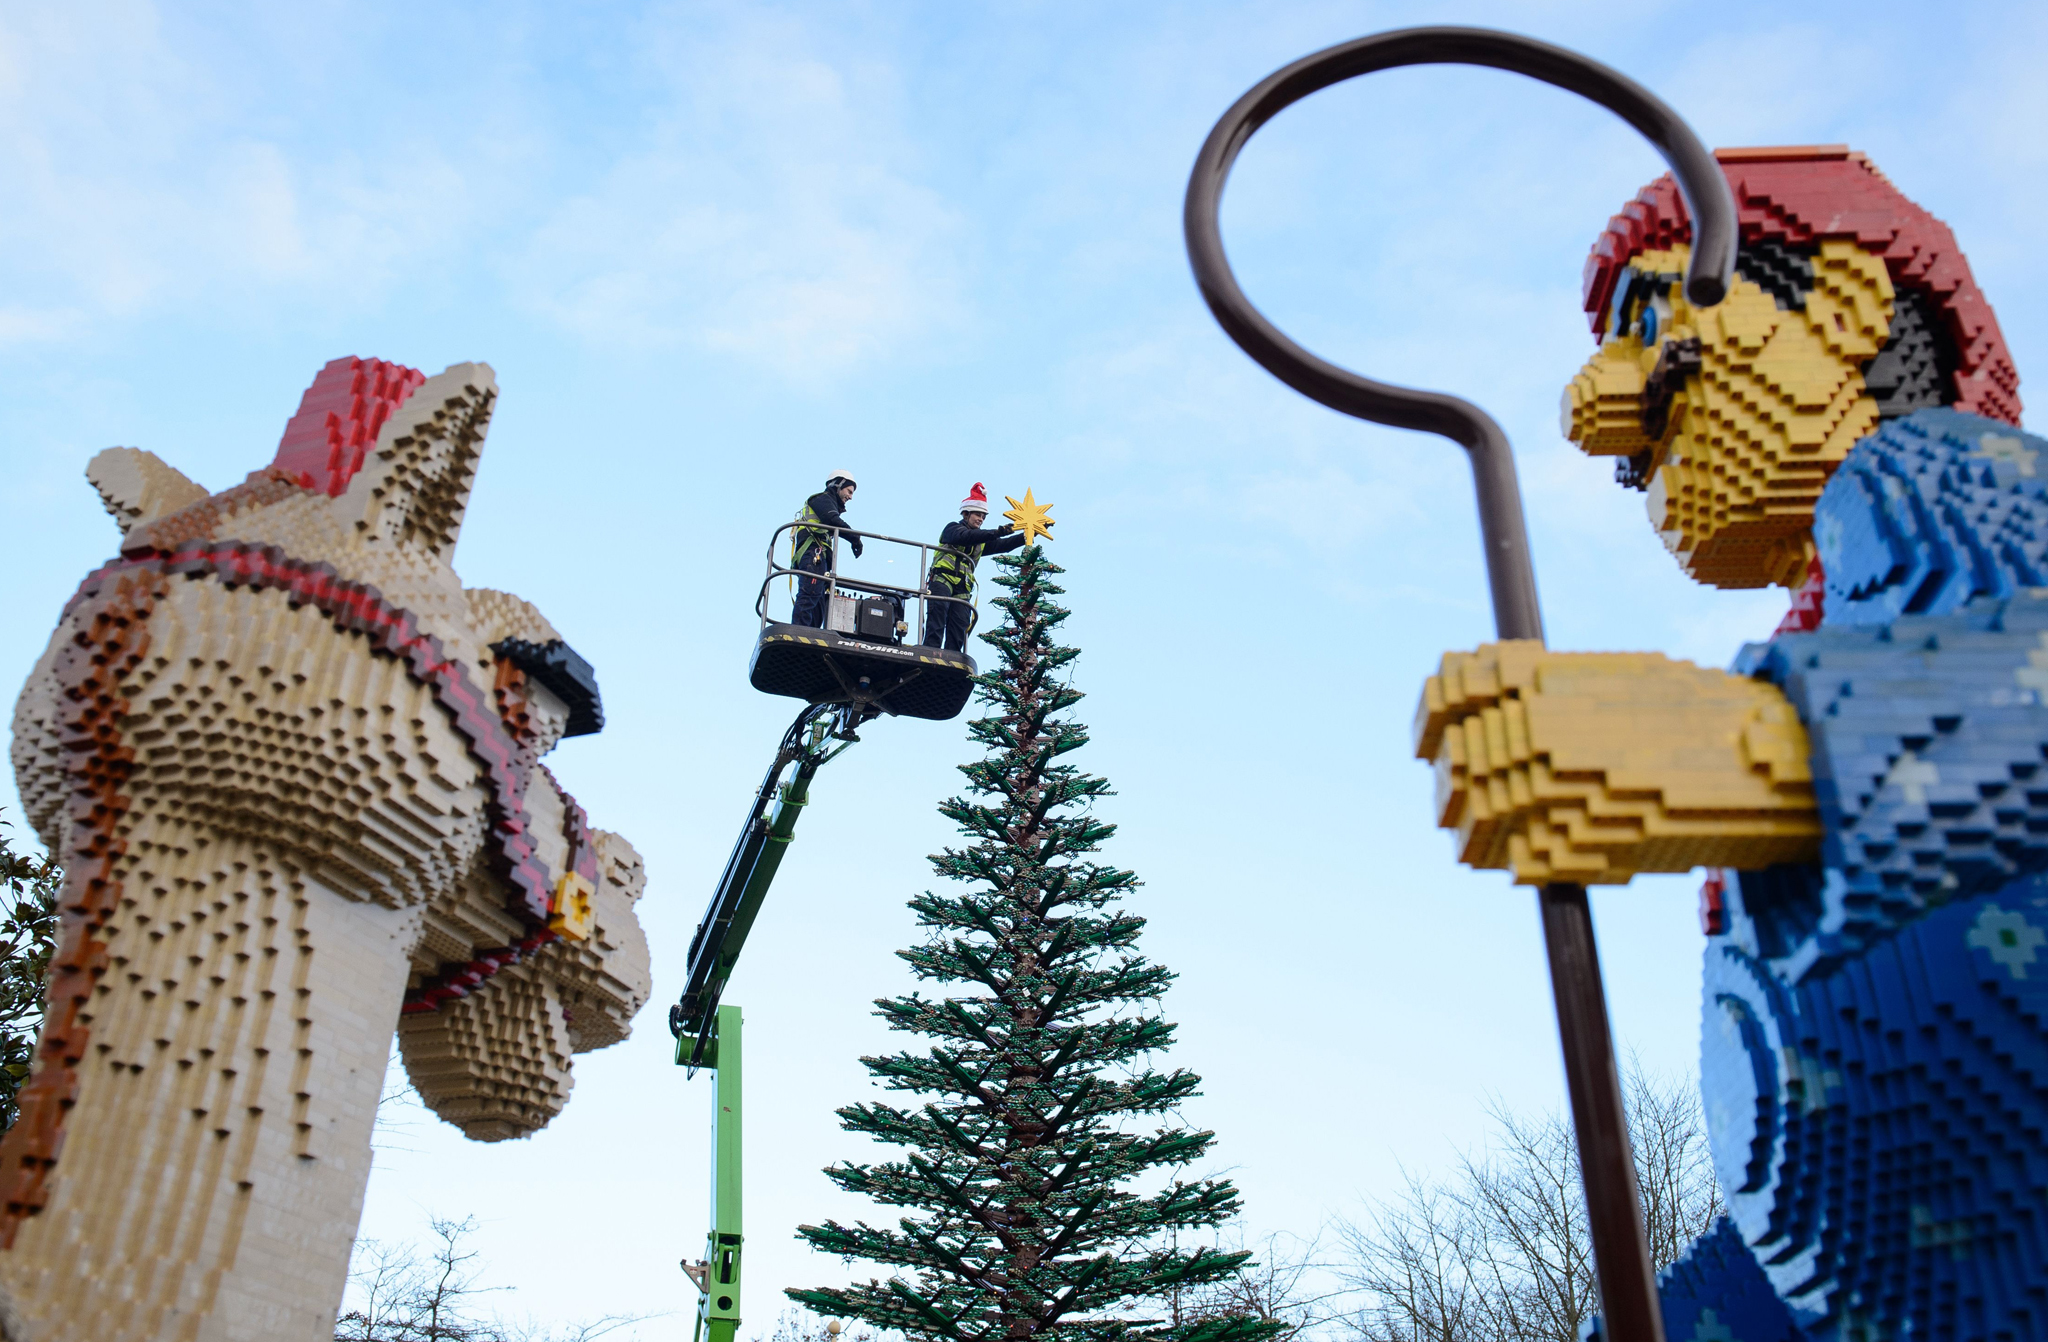 Legoland model maker Katrina James (R) poses with a 3kg Lego star as she places it onto the top of a 8m tall Lego christmas tree at Legoland Windsor Resort, west of London. The tree is comprised of 300,000 lego bricks and took 4 weeks to build.